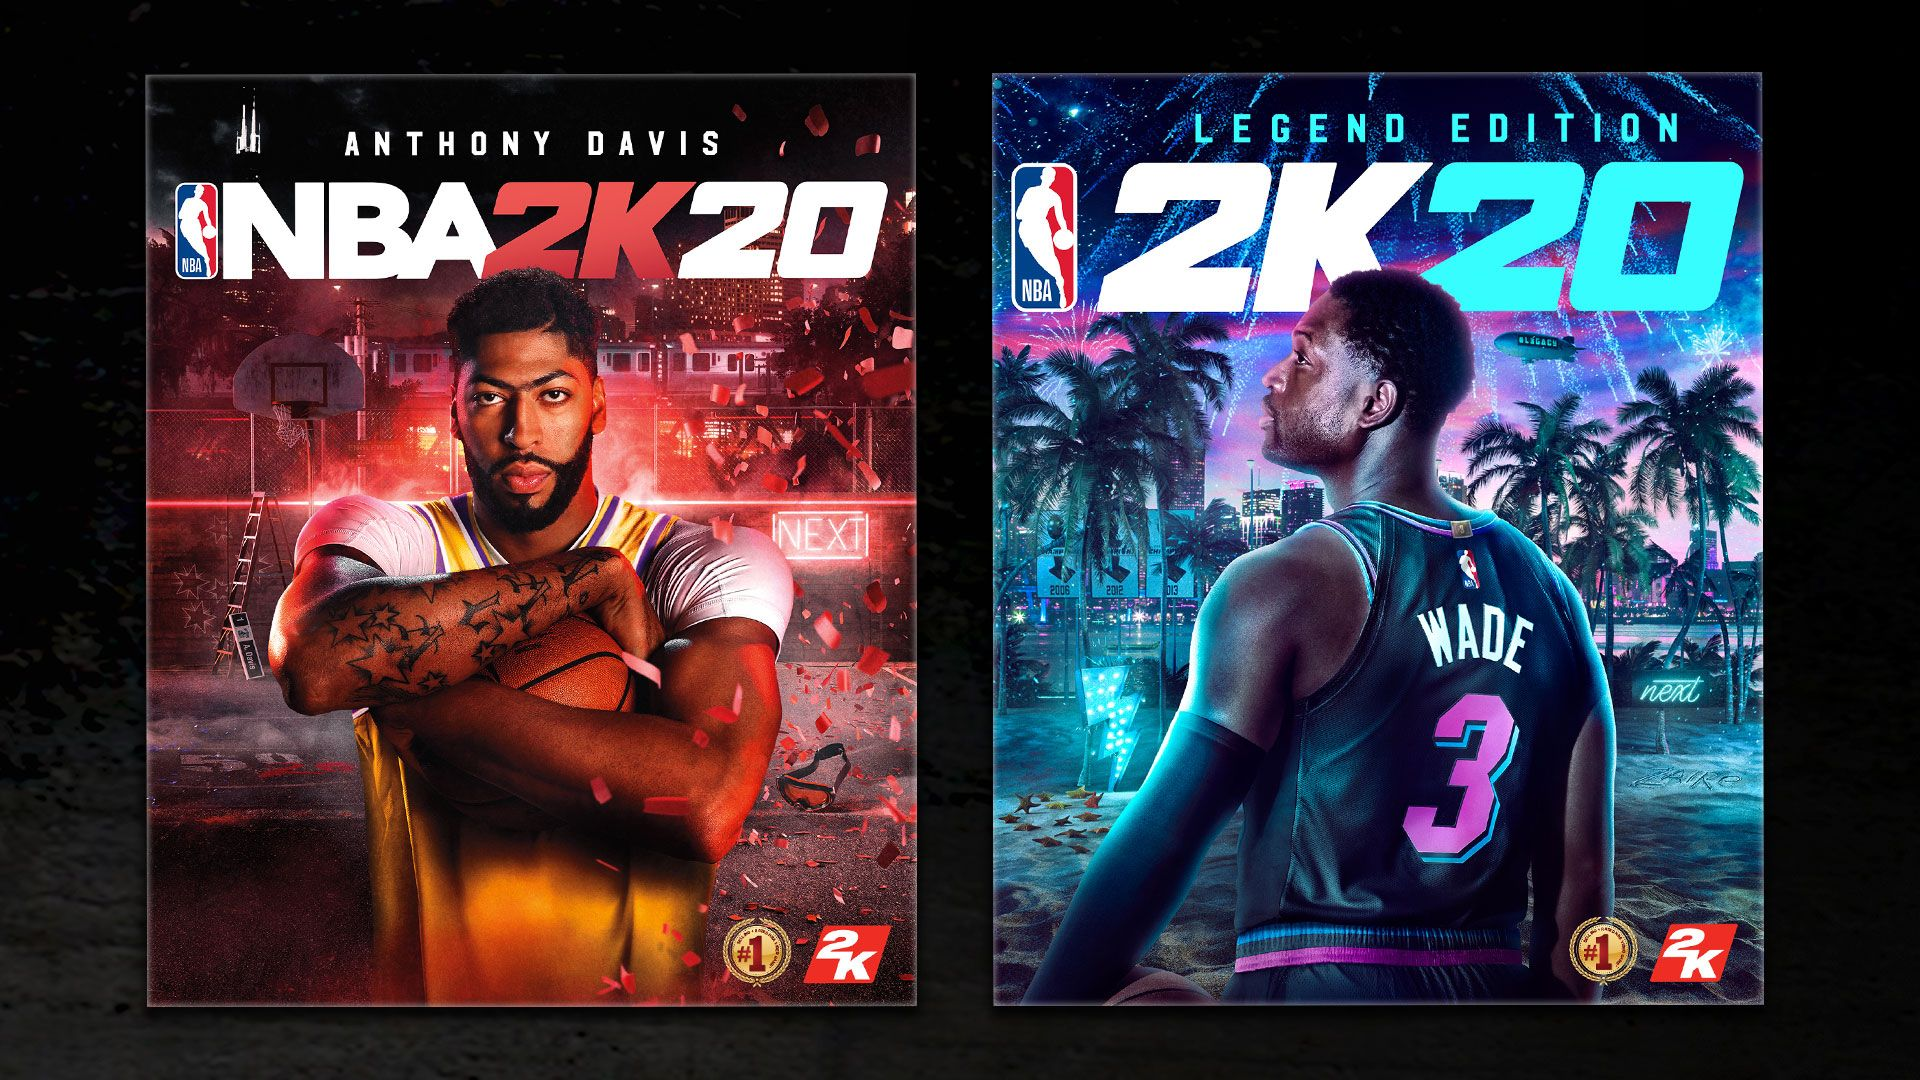 Davis And Wade Unveiled As Cover Stars For Nba 2k20